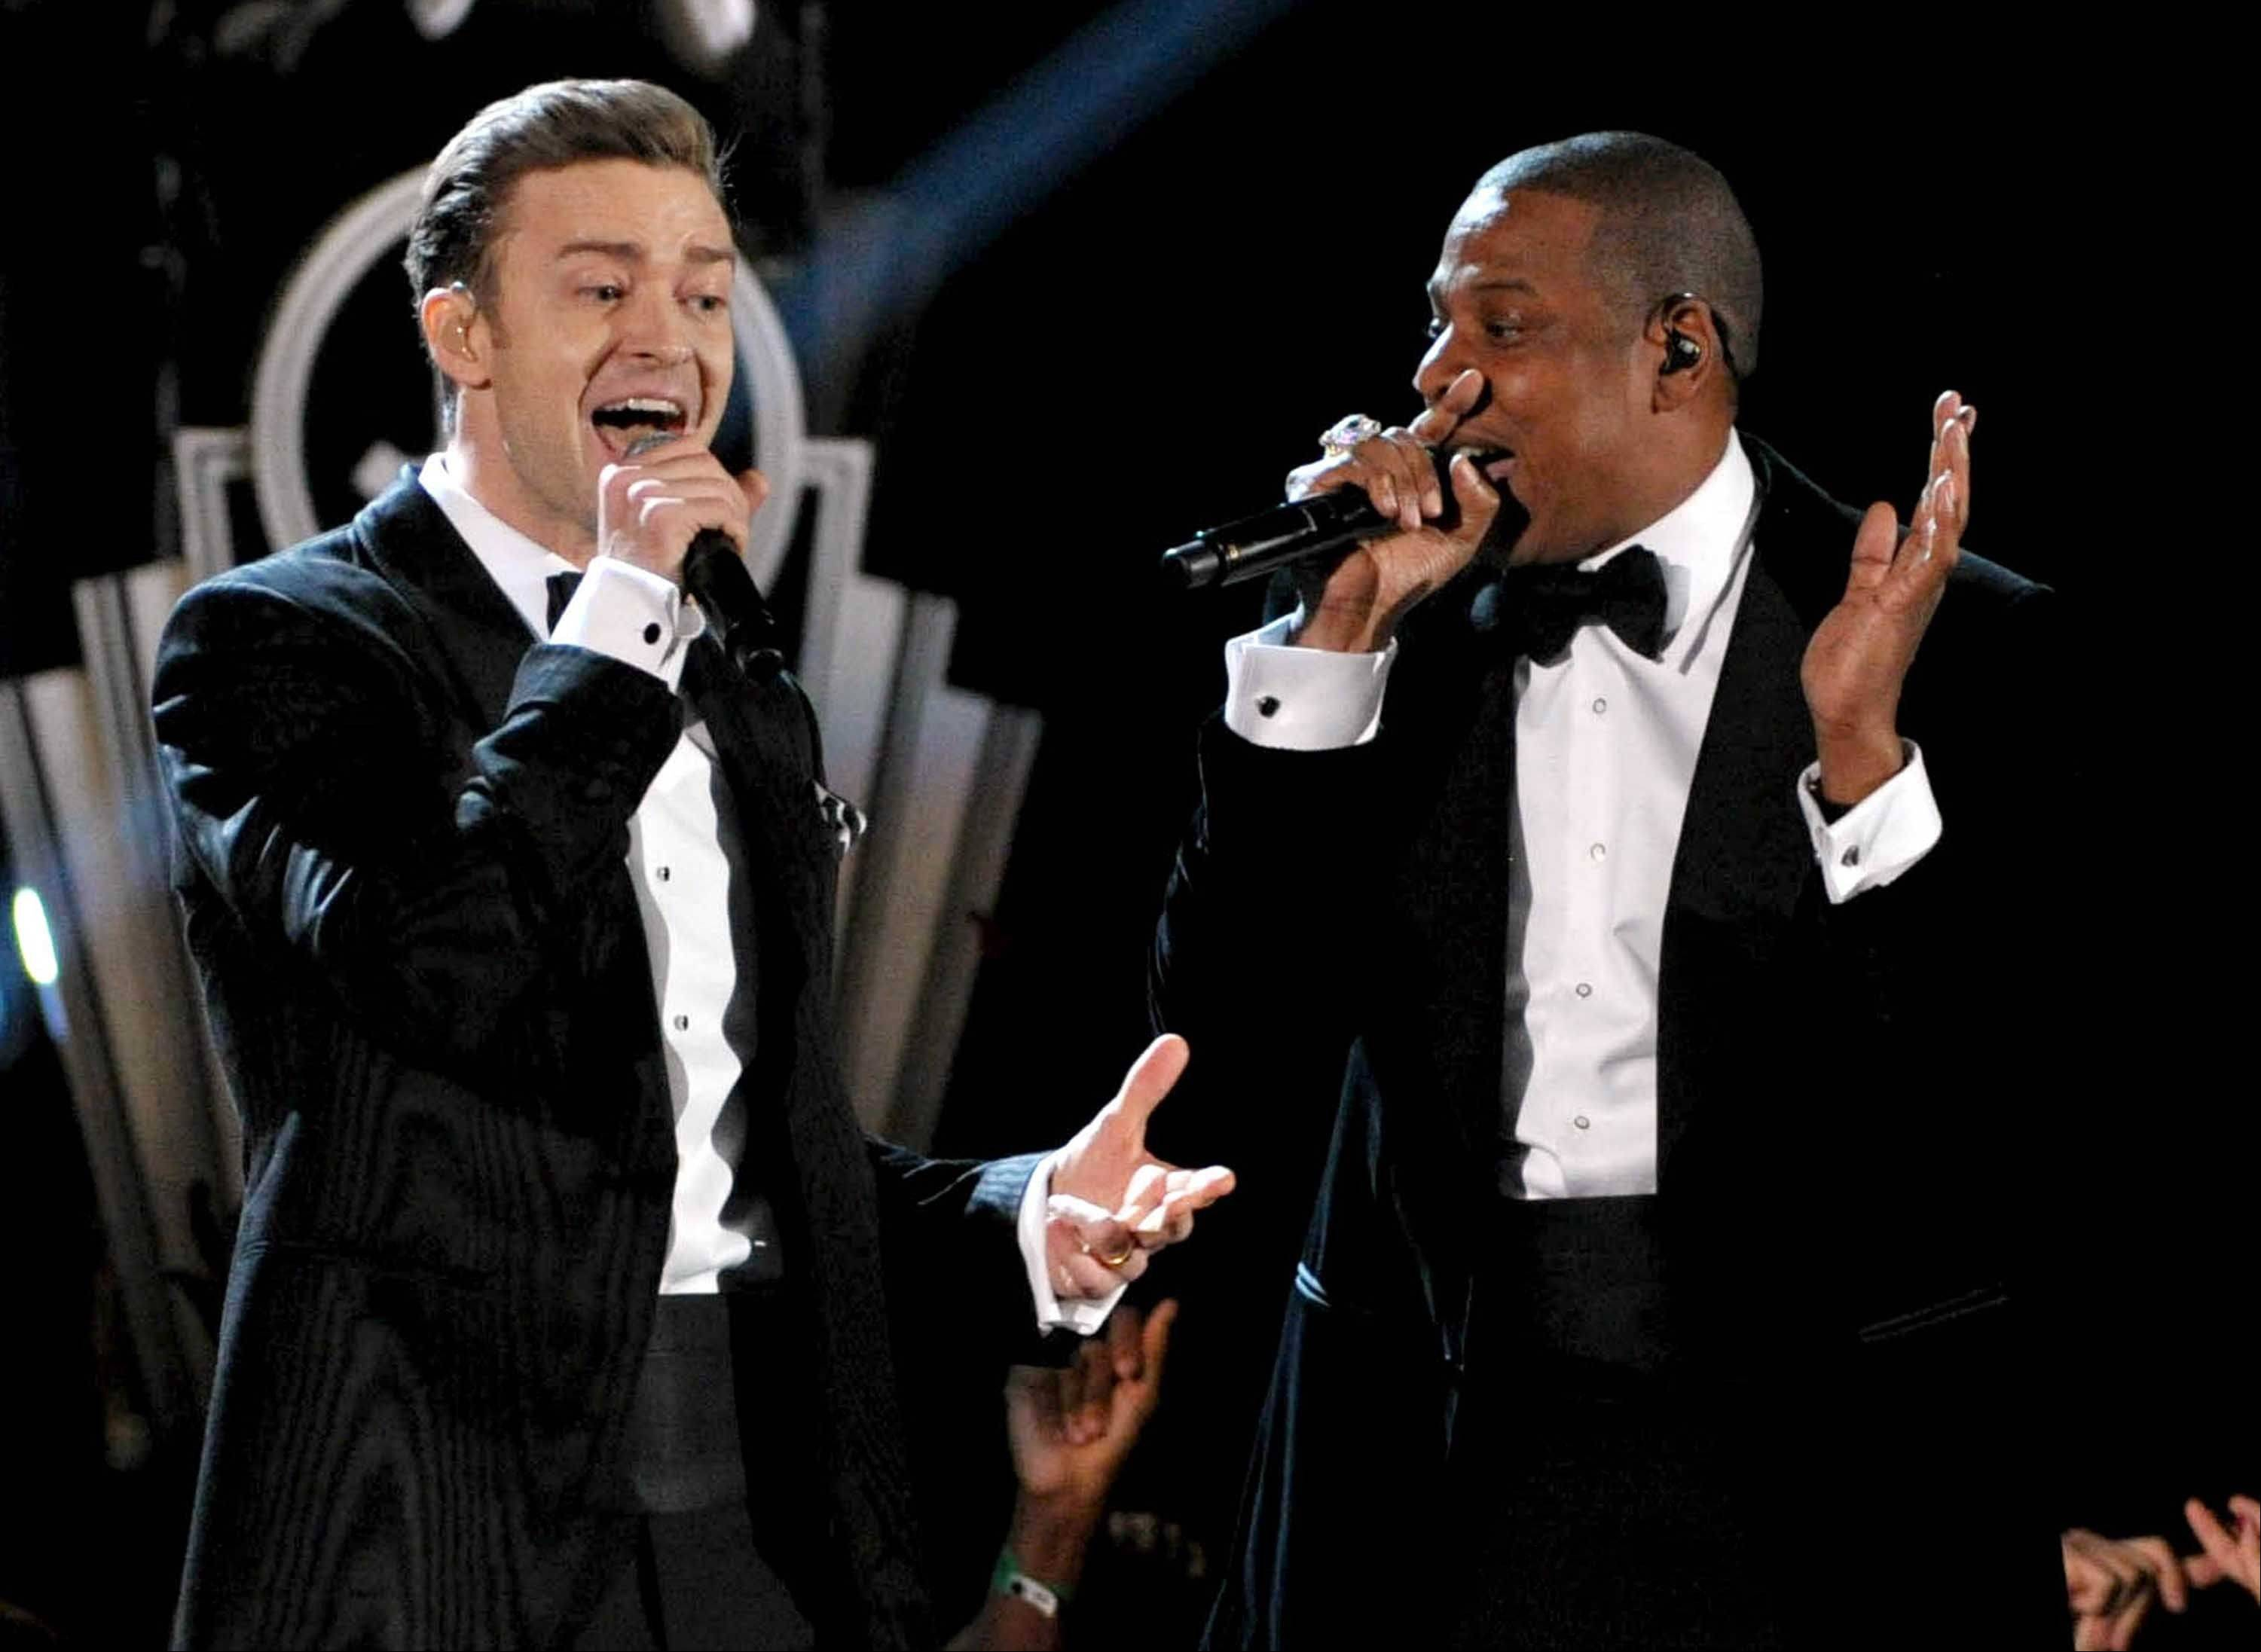 Justin Timberlake and Jay-Z, here performing at the 55th annual Grammy Awards, announced their 12-city Legends of the Summer tour beginning July 17 in Toronto and stopping at Soldier Field on July 22.